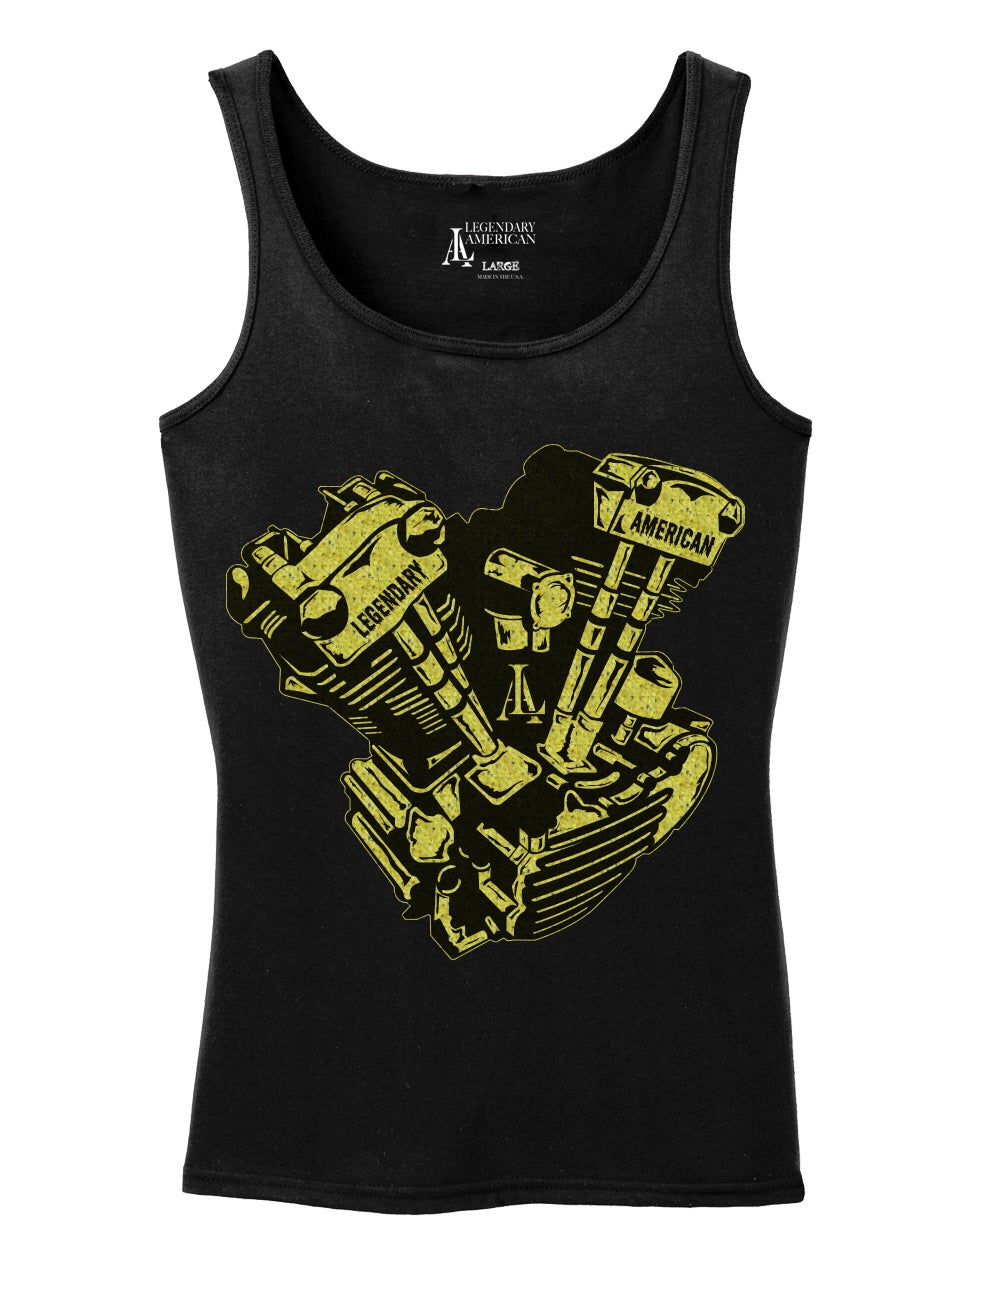 Image of Legendary American Womens Knucklehead tank top - gold print